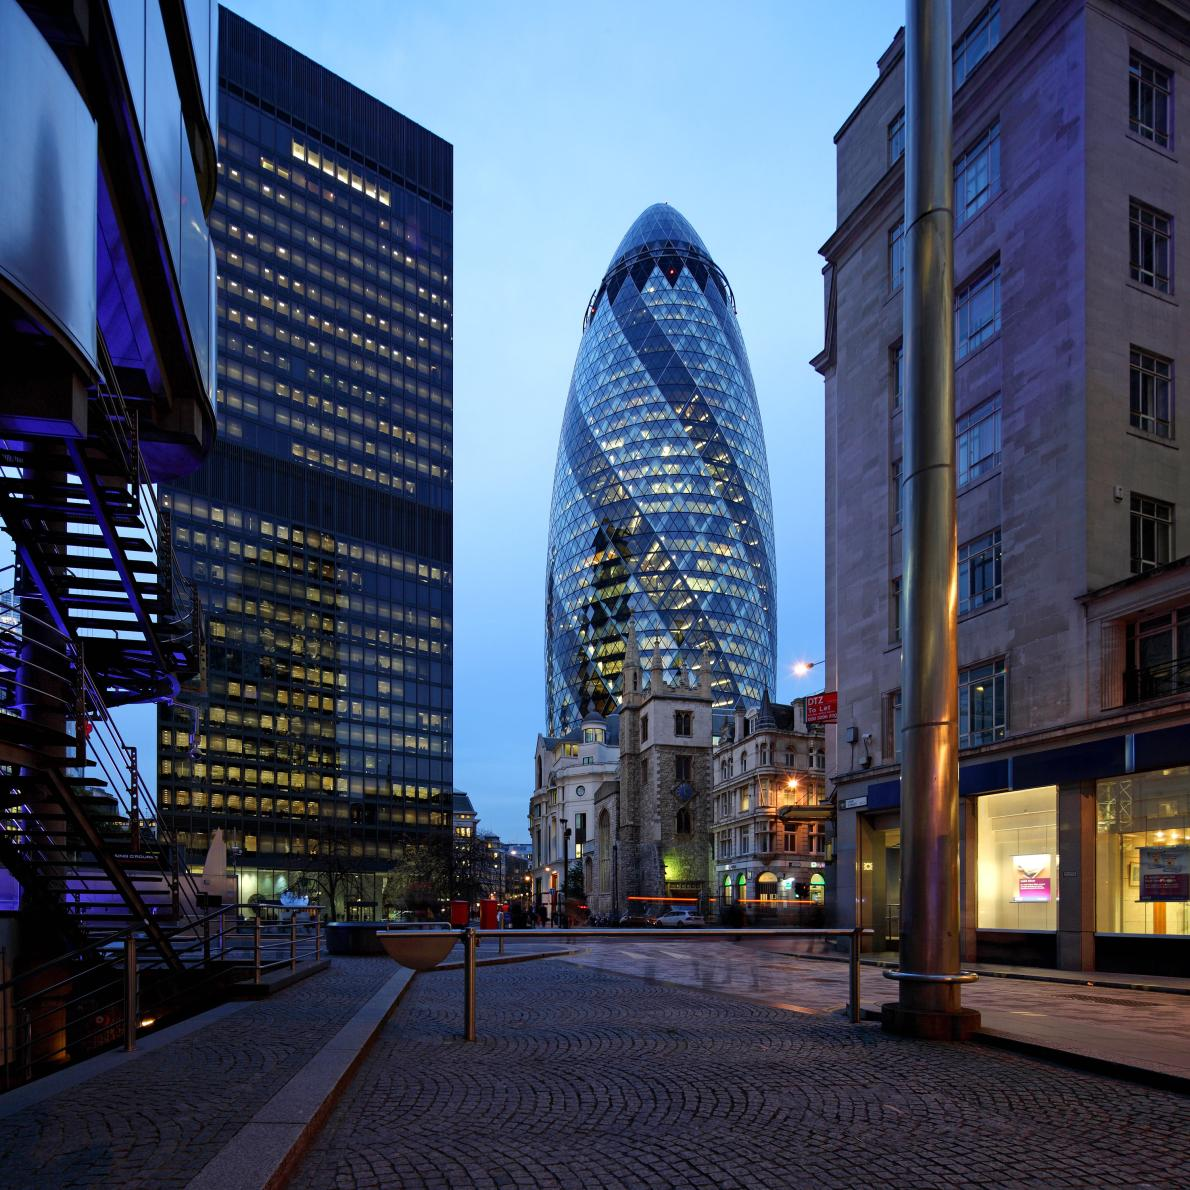 30-st-mary-axe-london-united-kingdom.adapt.1190.1.jpg